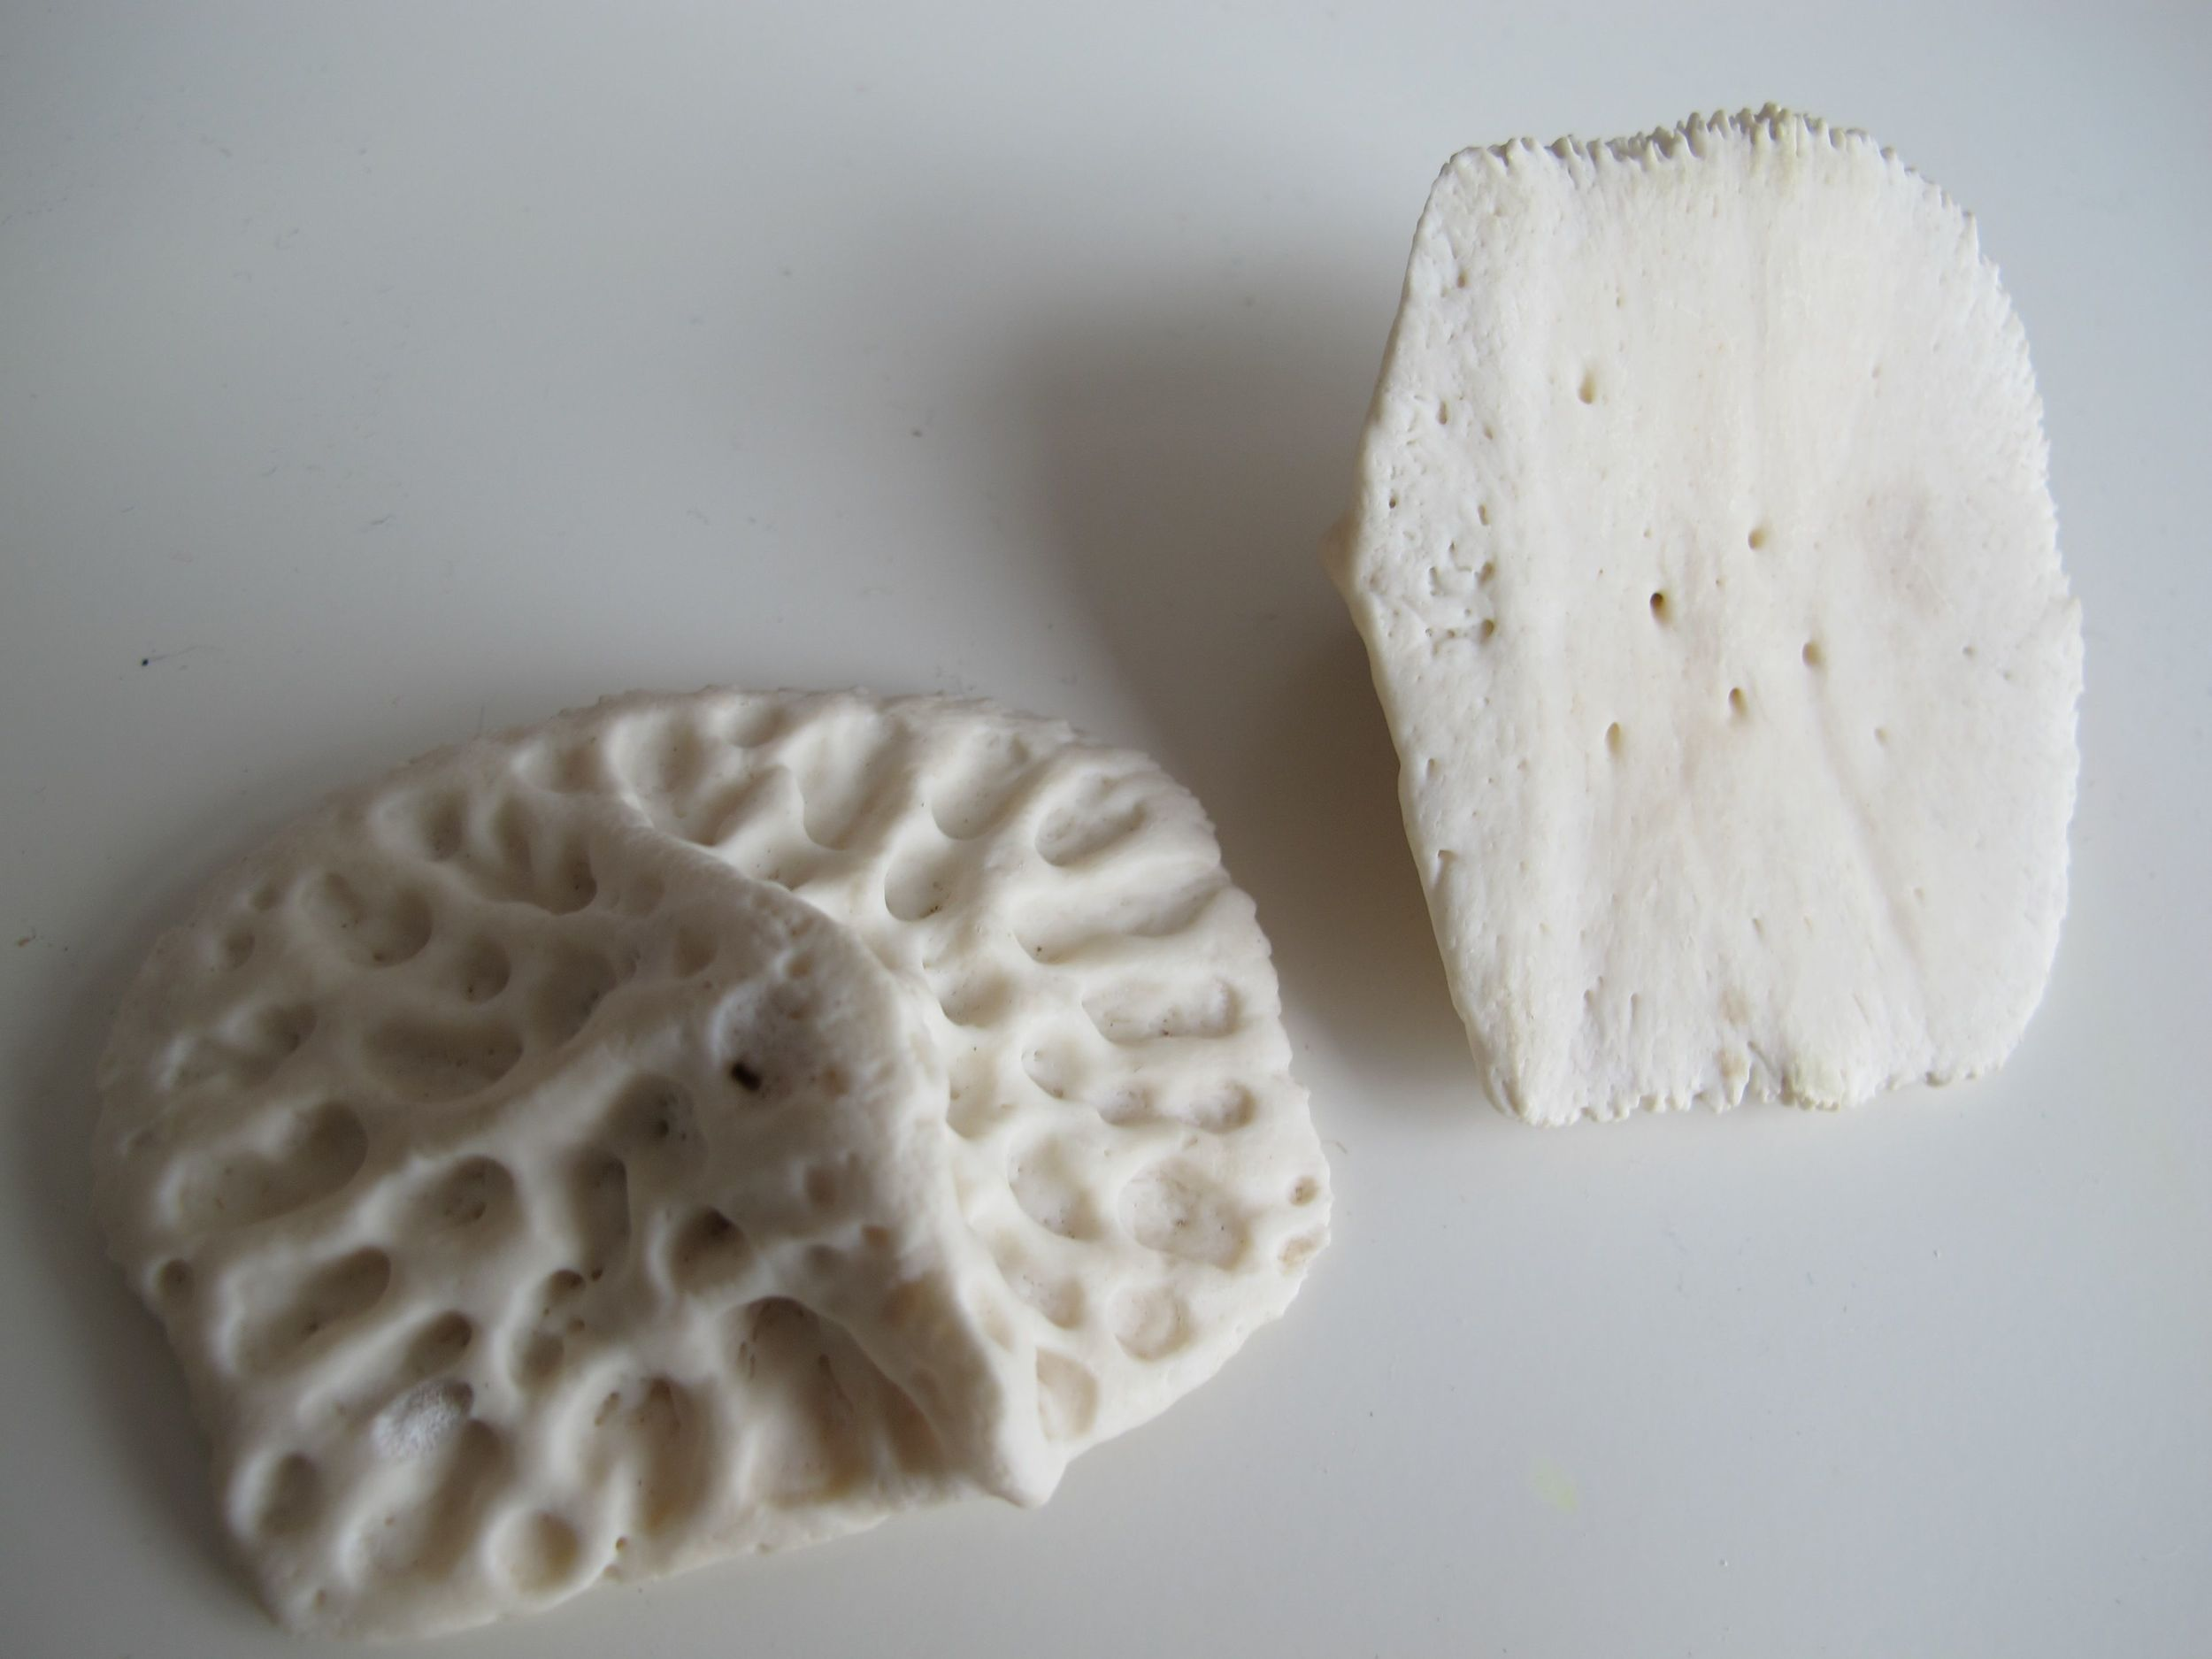 These circles of bones are dermal scutes from an alligator, which serve as body armor.